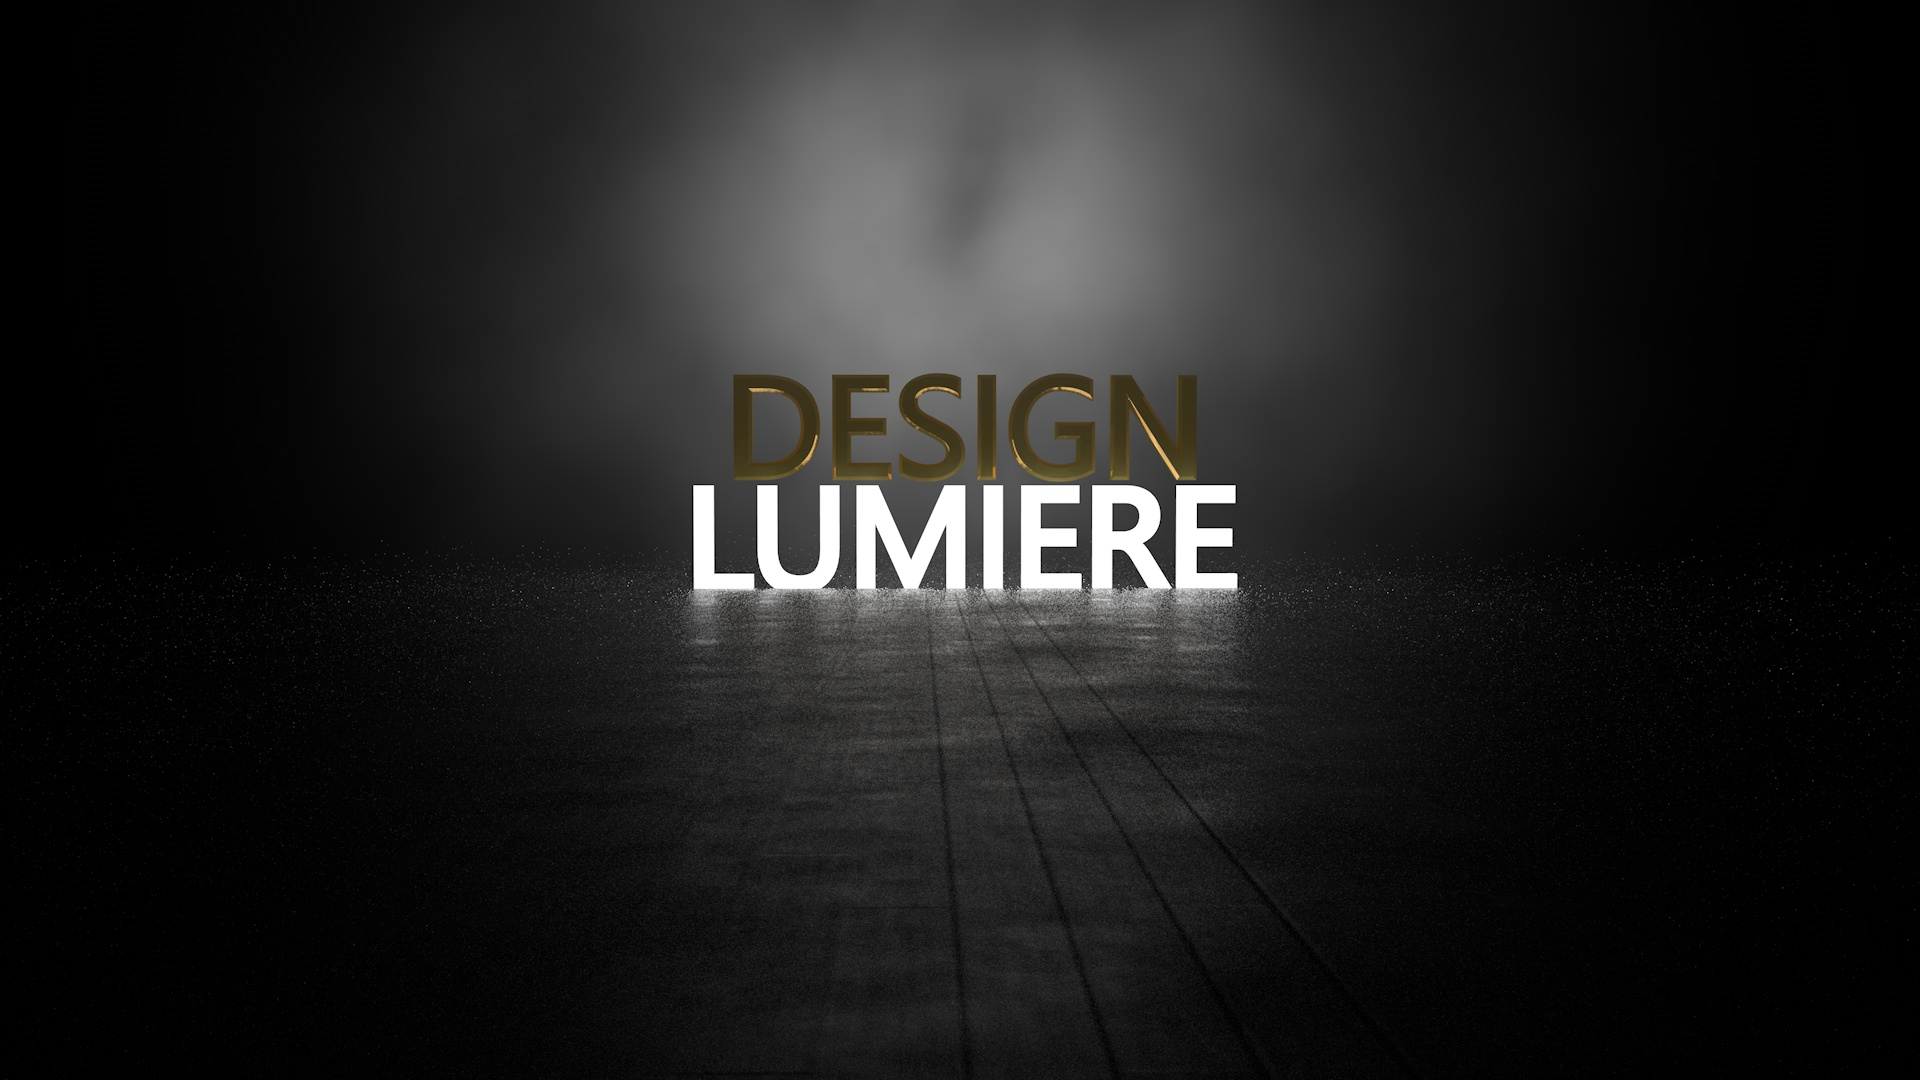 Design Lumiere Custom Bespoke Lighting art